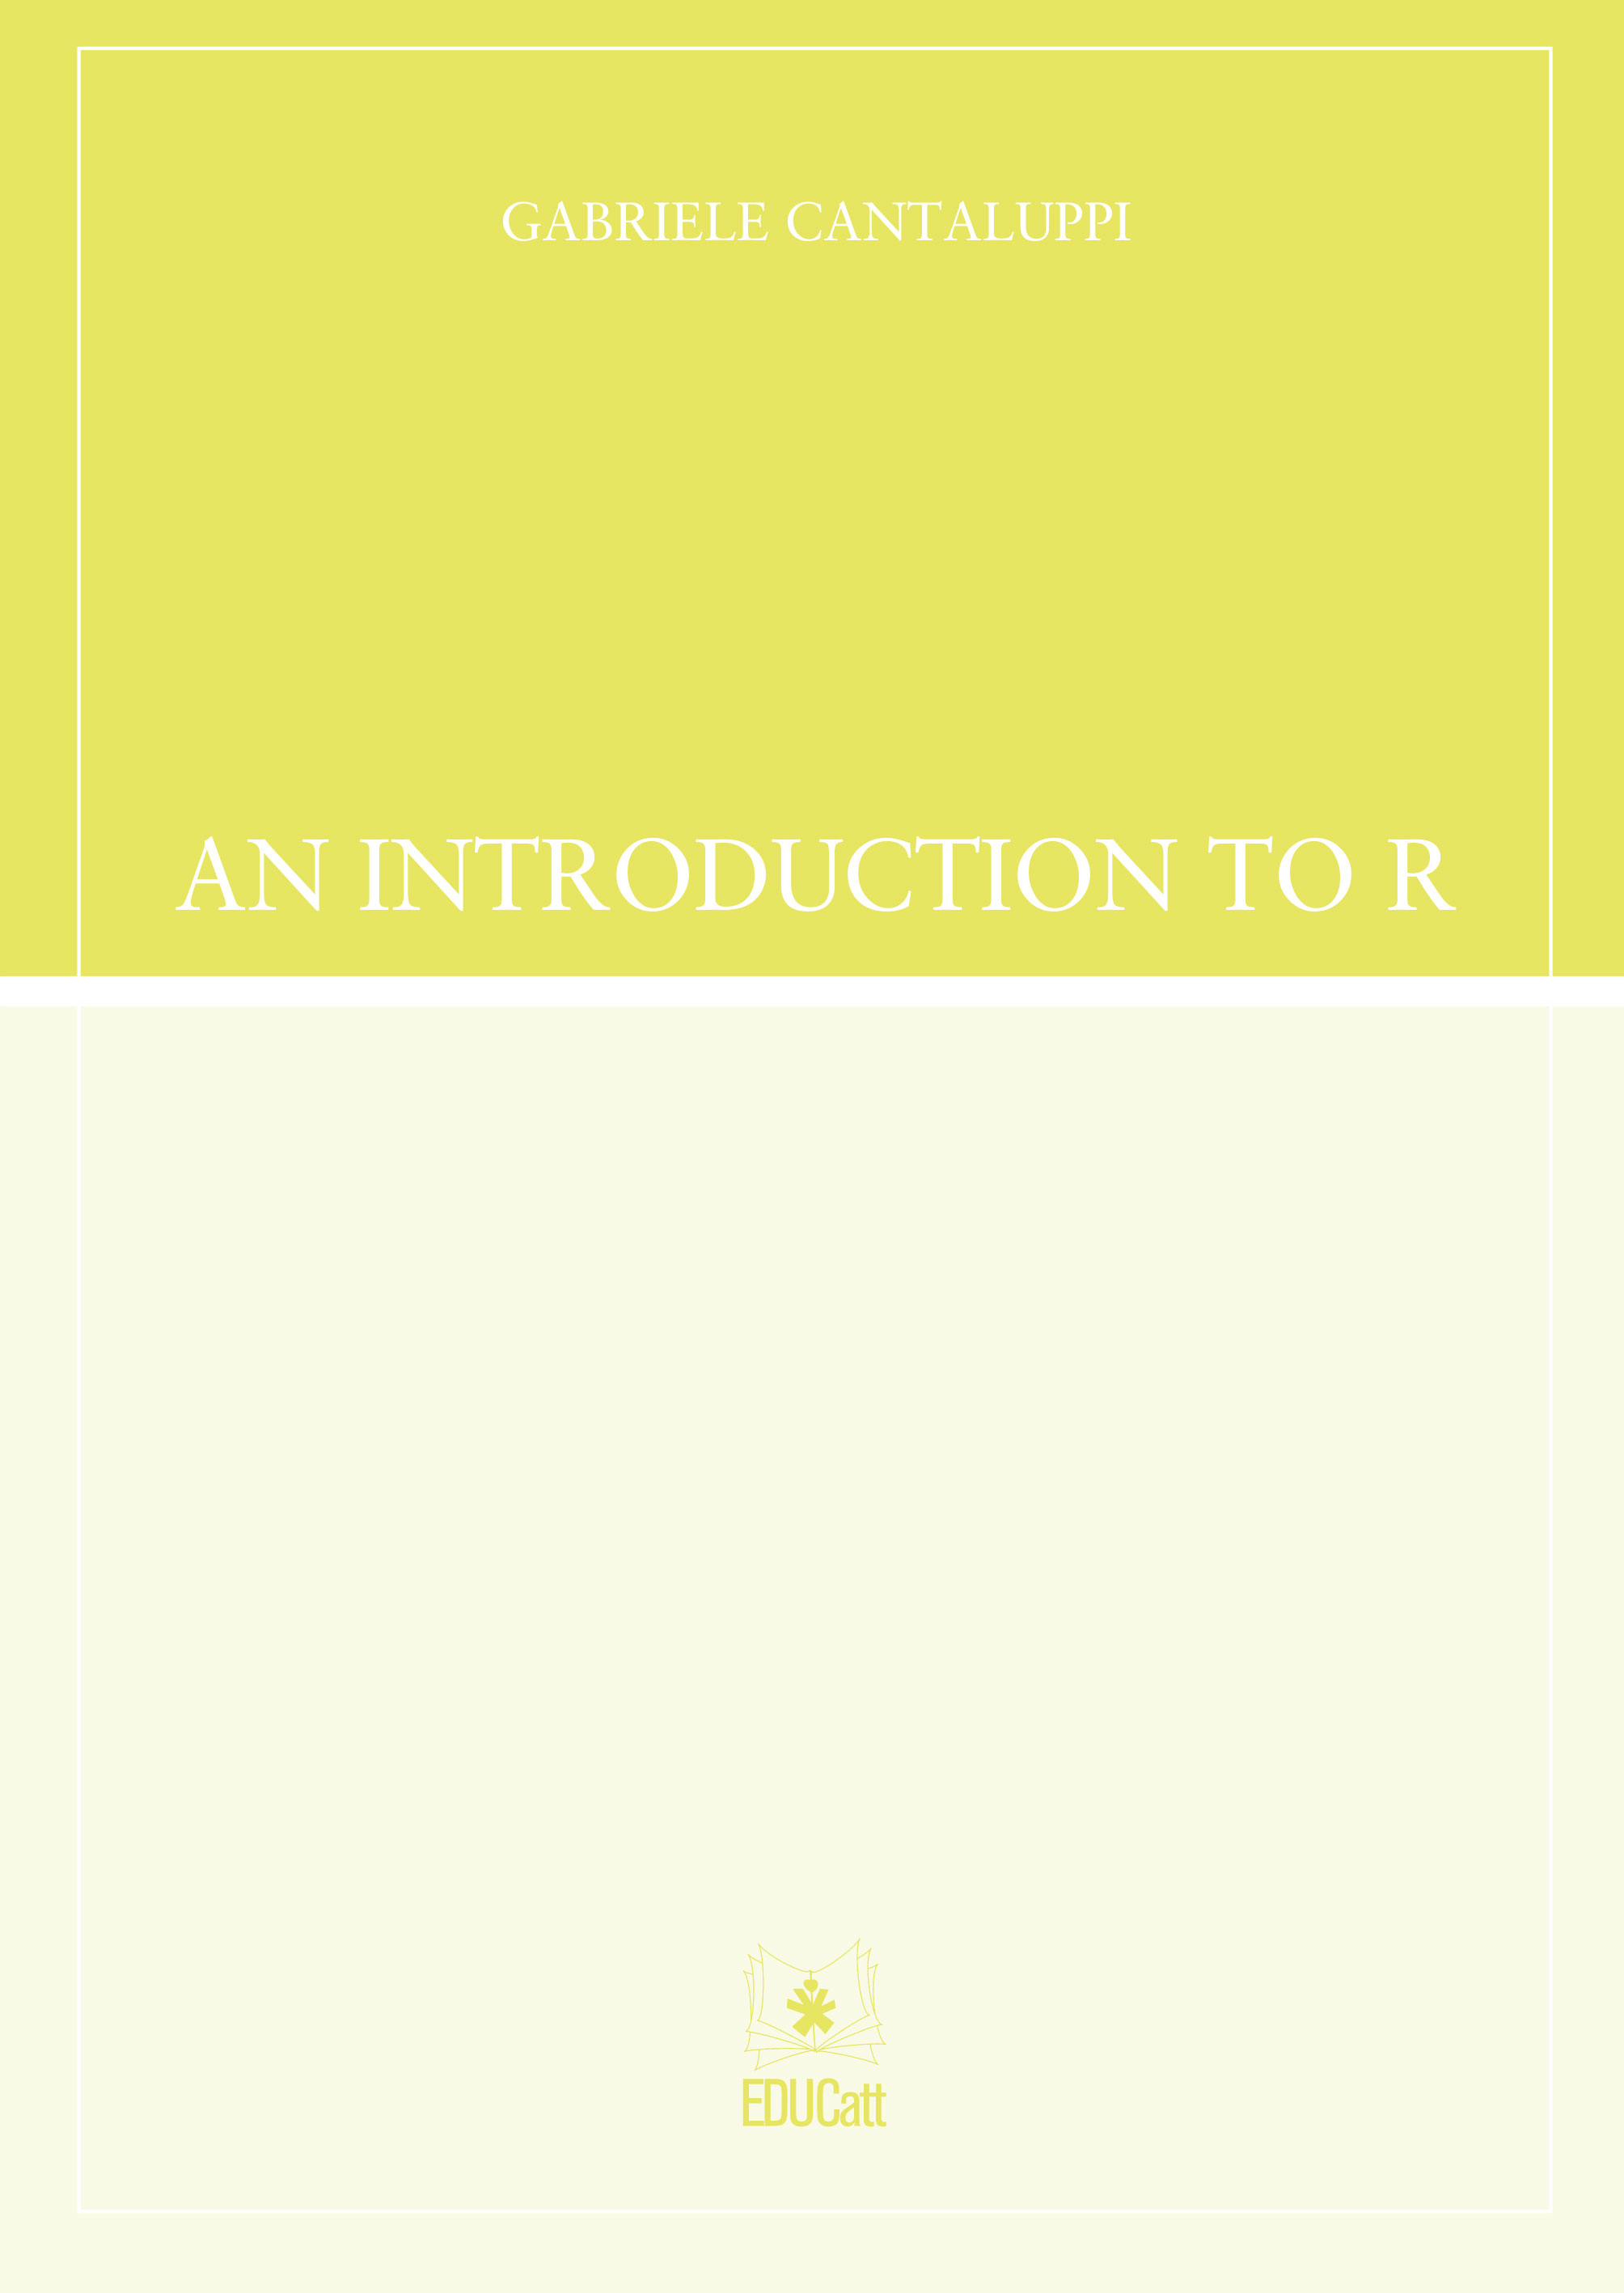 AN INTRODUCTION TO R 2019